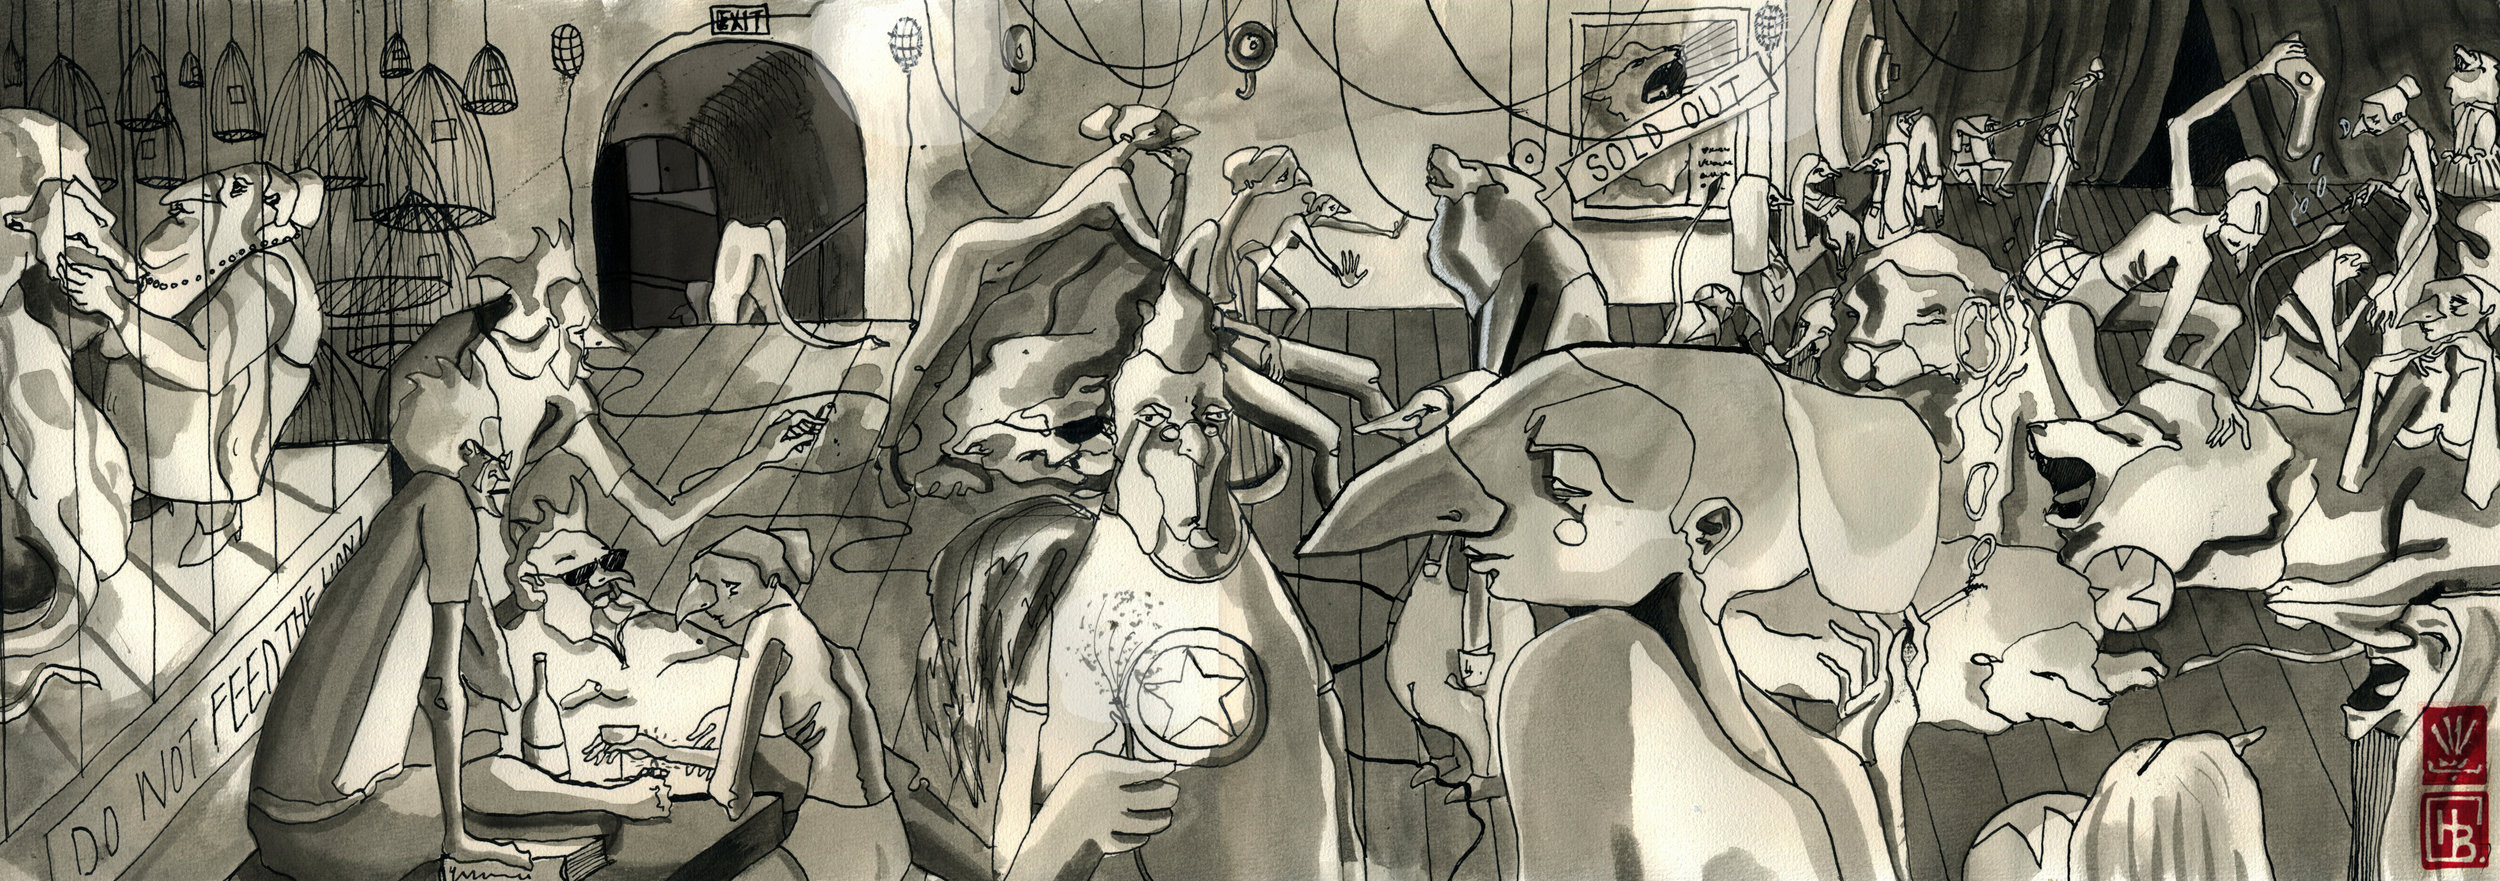 Backstage, 2014  indian ink, character design and set ideas